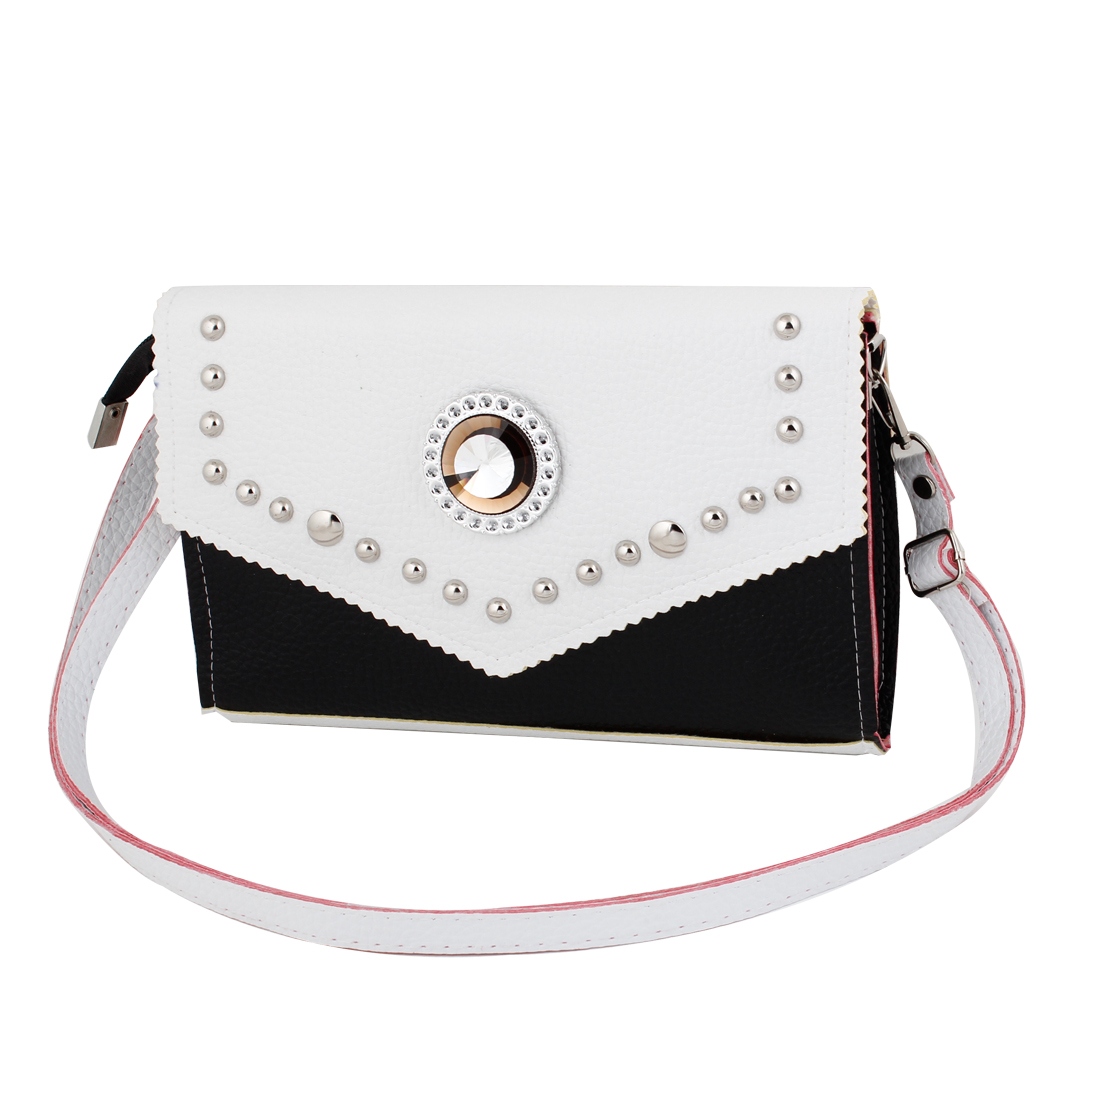 Lady White Black Faux Leather Glitter Rhinestone Decor Satchels